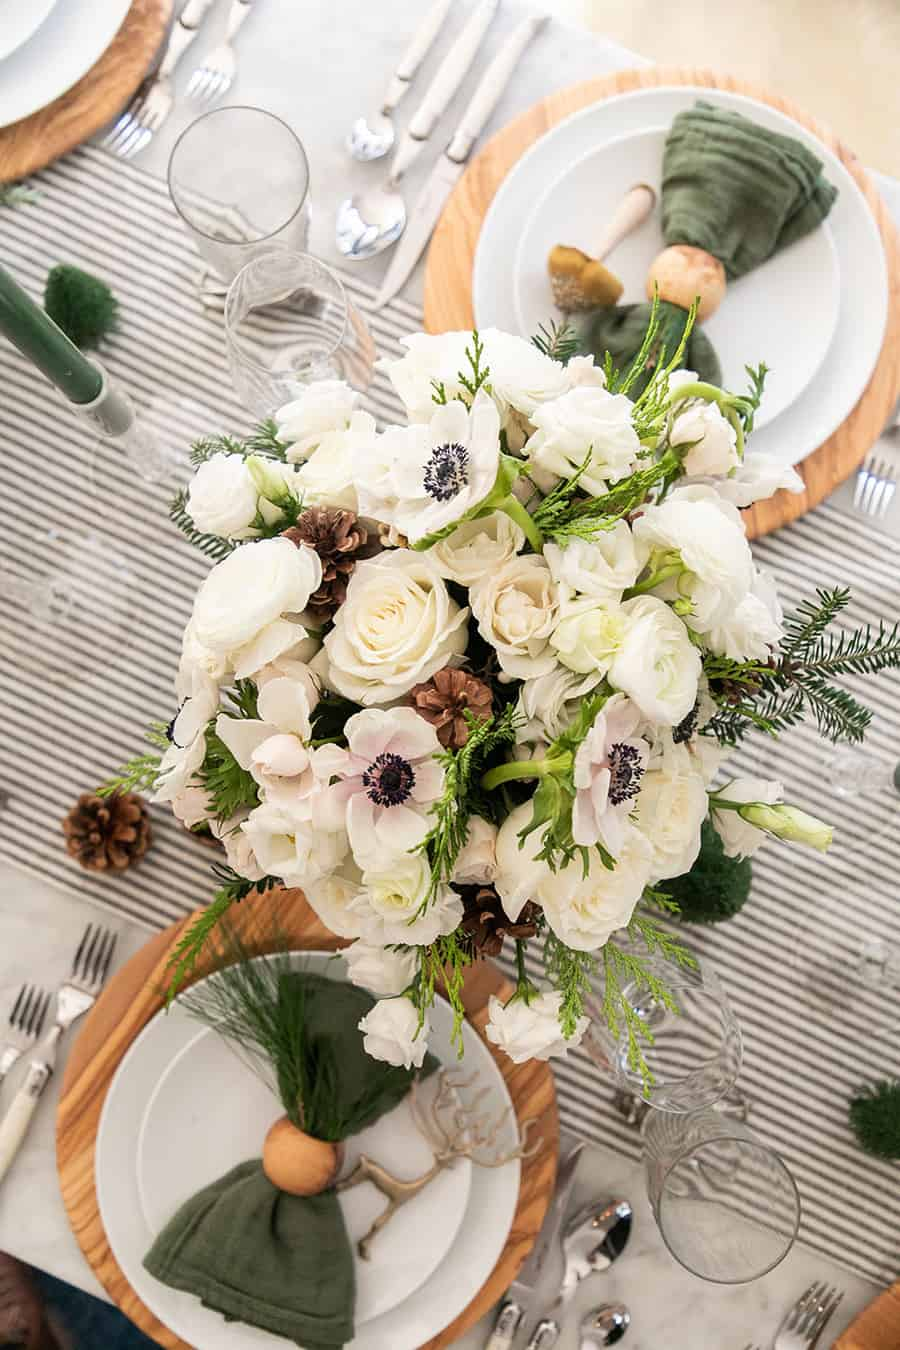 Christmas flower arrangement on a table with striped linen table runner.